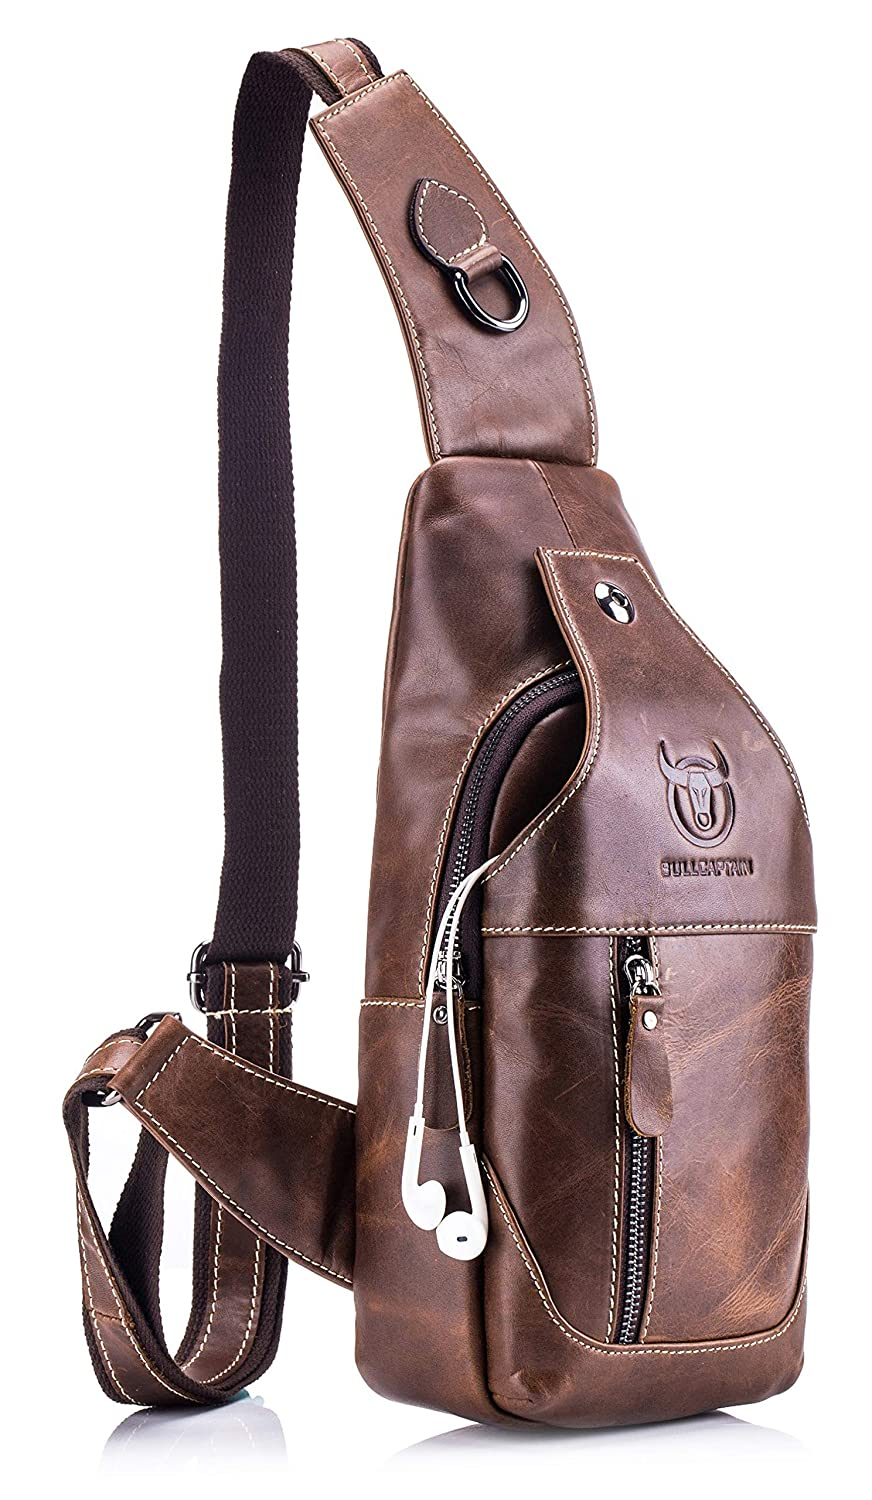 Men's Sling Bag Genuine Lightweight Leather B07R3Y7WSX Chest Hiking Shoulder Backpack Lightweight Casual Crossbody Bags Hiking Outdoor Daypacks (brown) [並行輸入品] B07R3Y7WSX, ブランドストリートリング:d5c18827 --- anime-portal.club